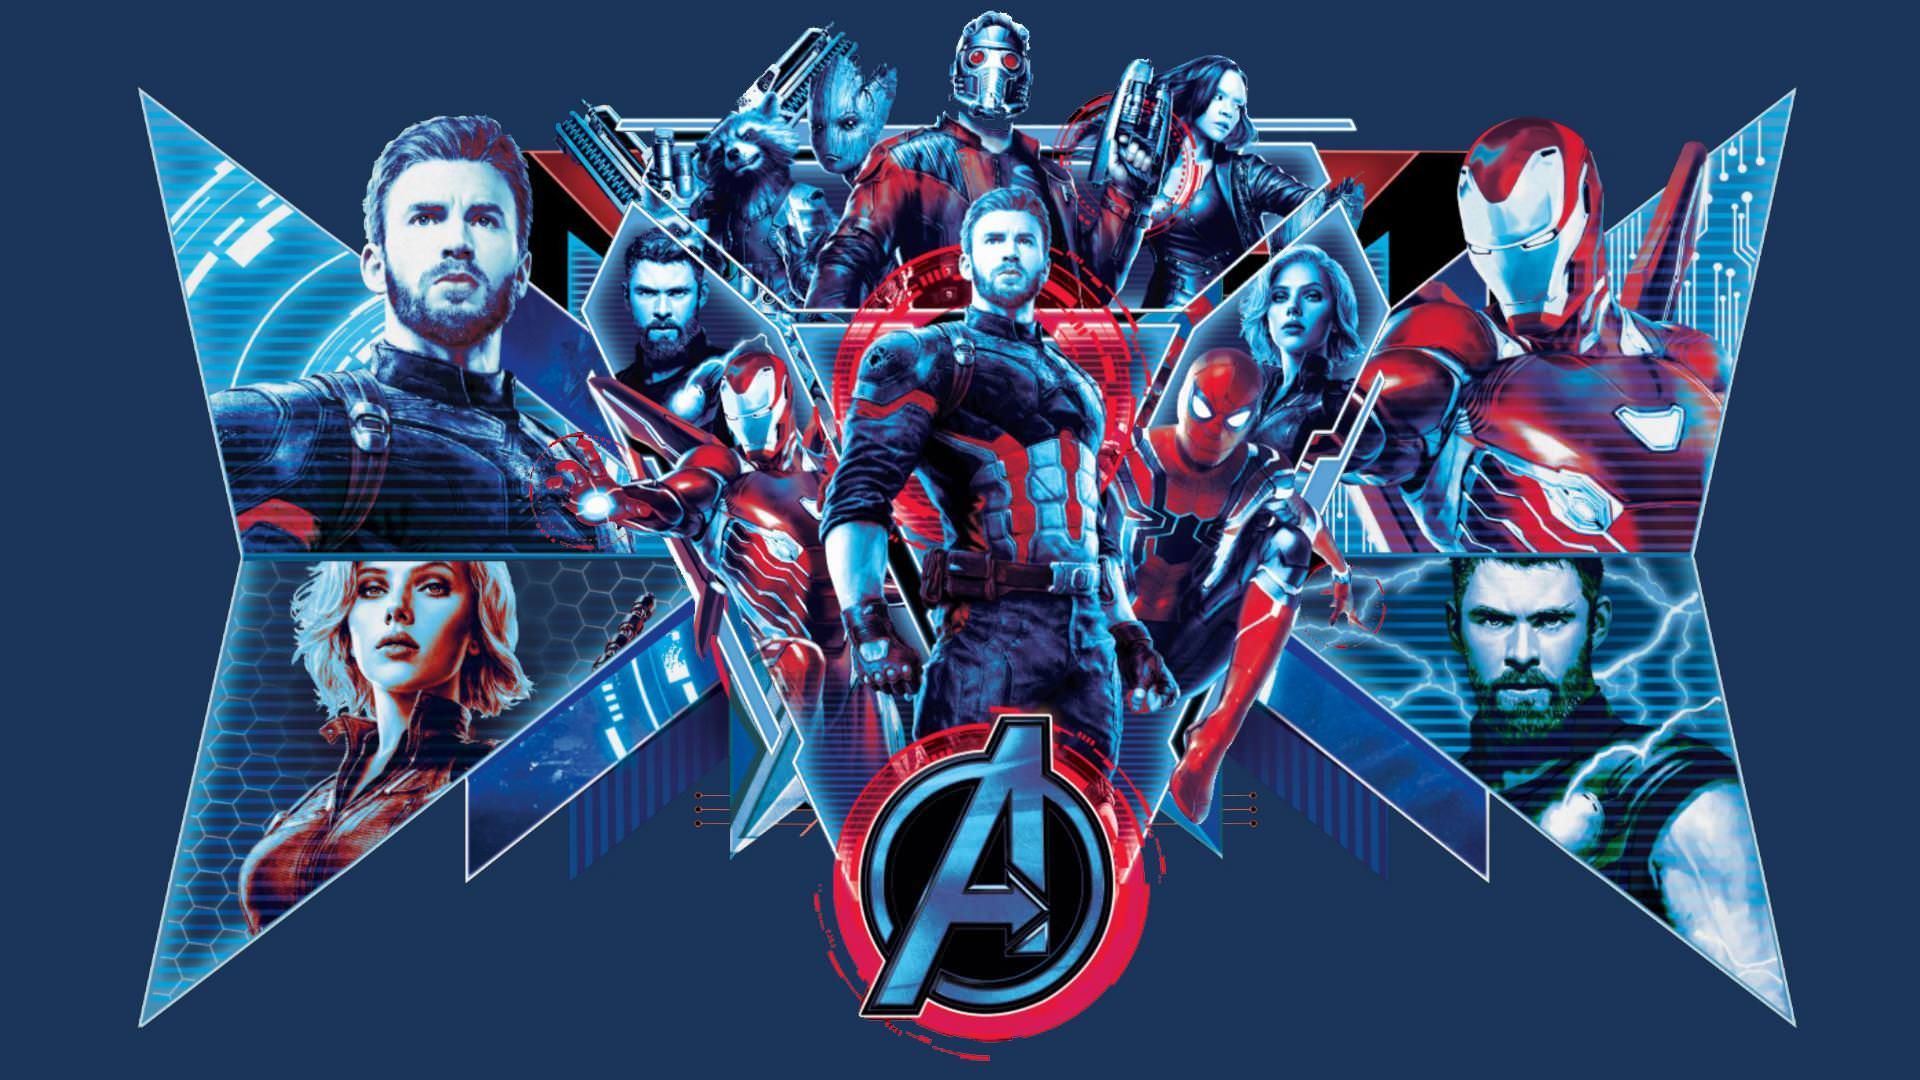 1920x1080 Avengers Infinity War Movie Wallpaper Icon Wallpaper Hd Avengers Wallpaper Avengers Infinity War Avengers